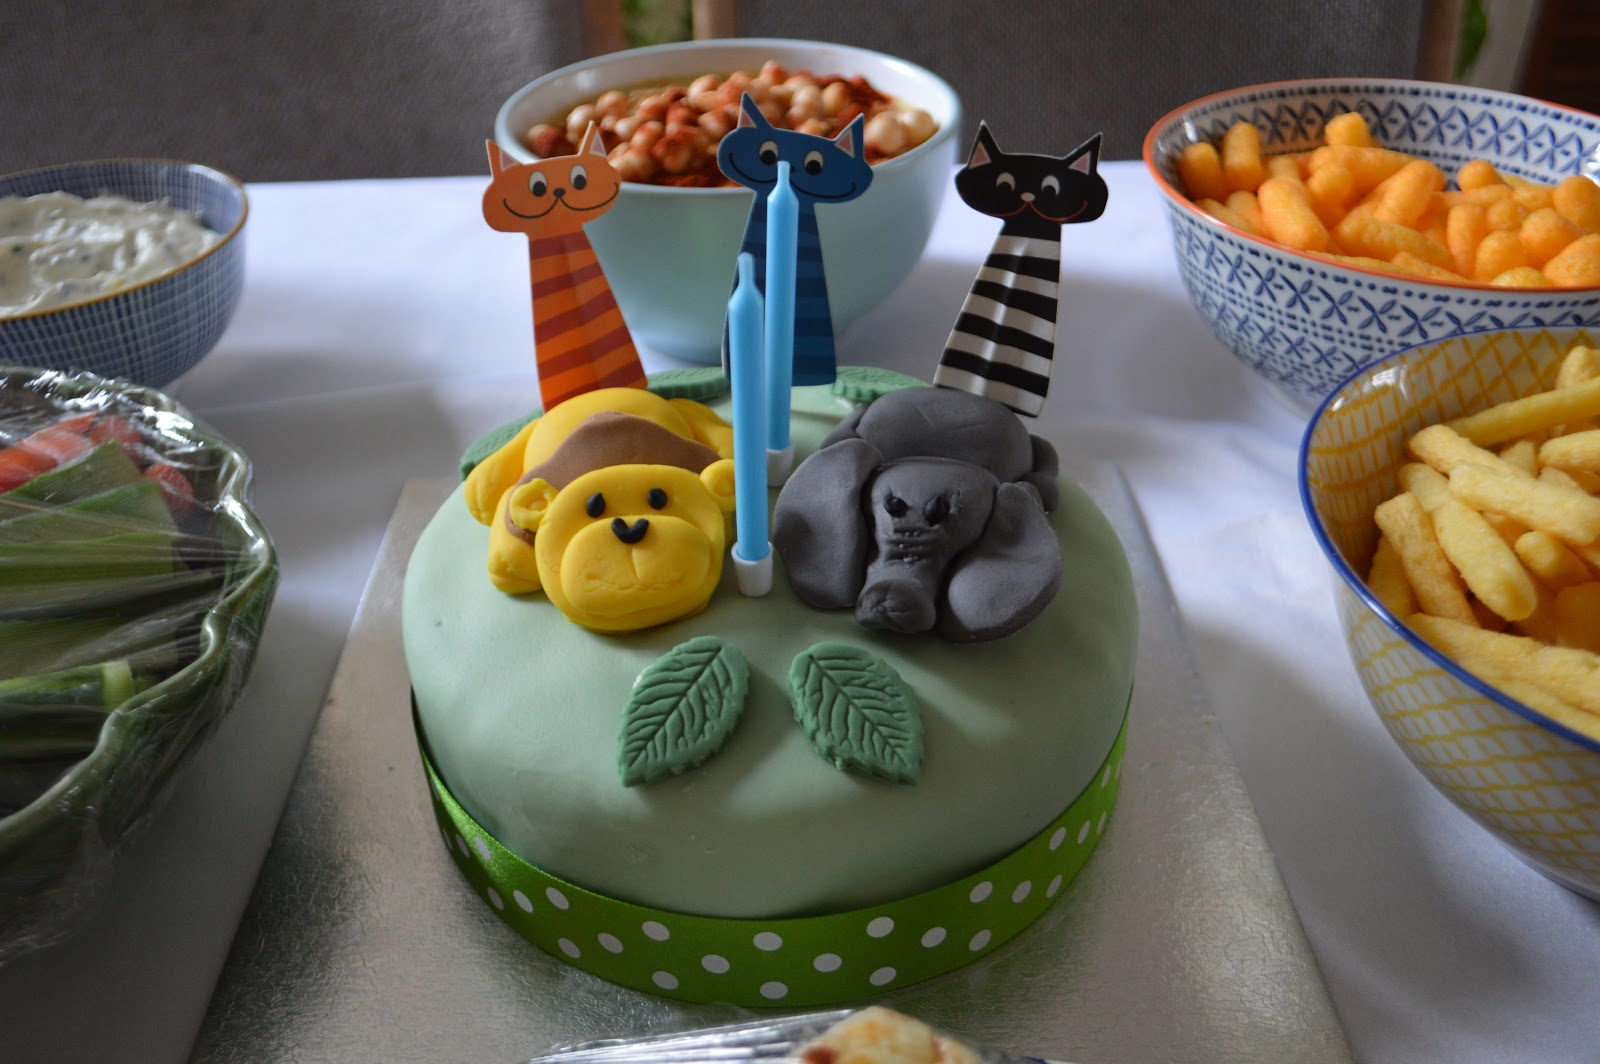 this is a picture of a cake with a lion and elephant topper